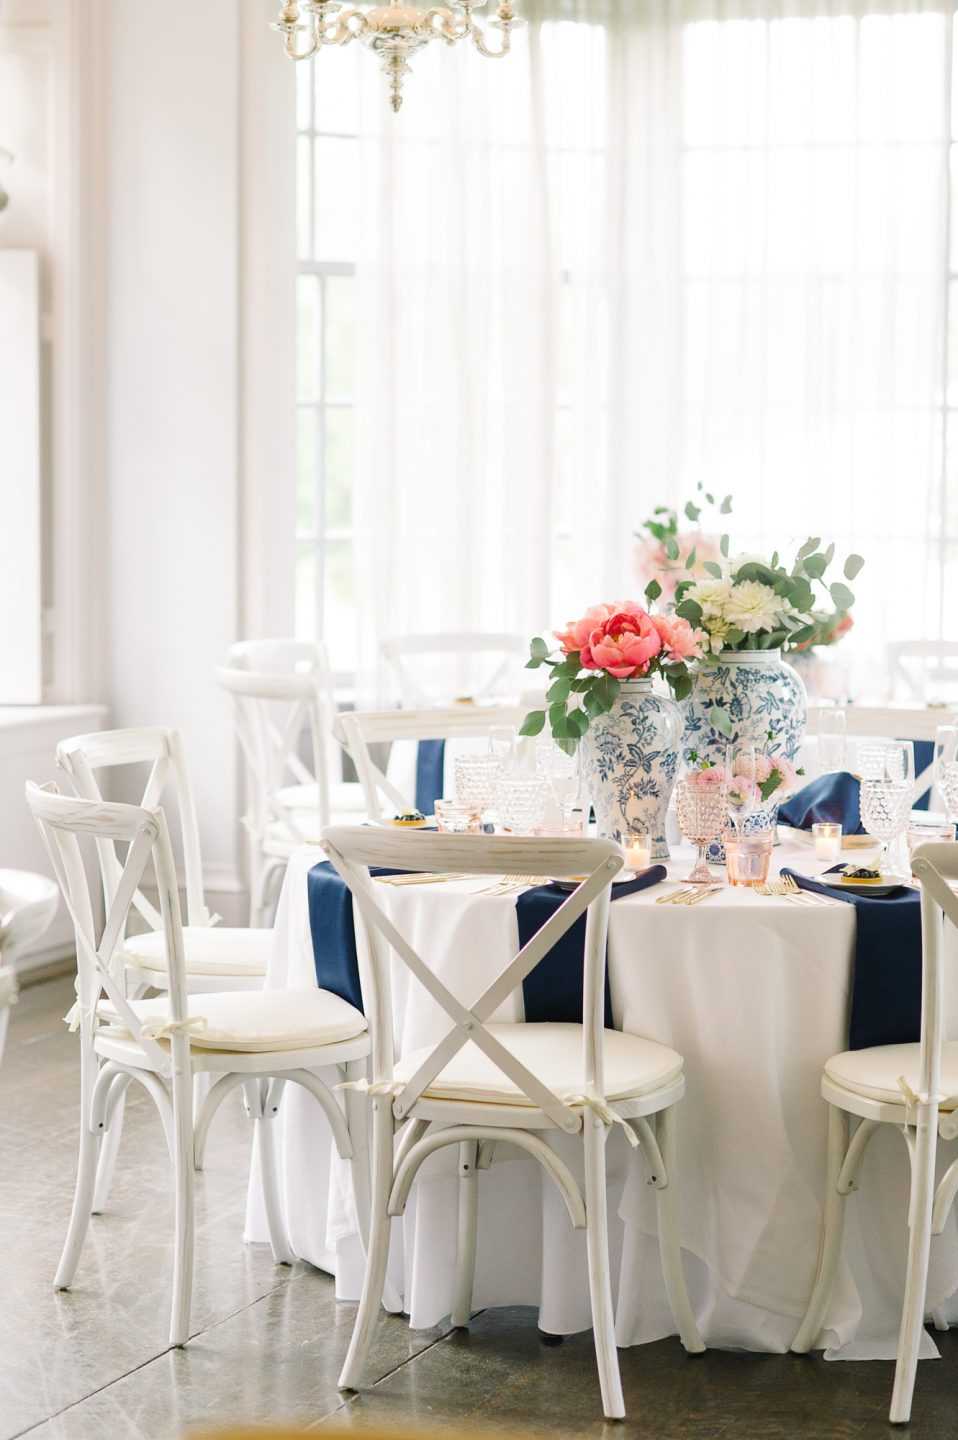 tara-mcmullen-photography-barb-simkova-mclean-house-wedding-estates-of-sunnybrook-wedding-shealyn-angus-wedding-blush-and-bloom-wedding-030